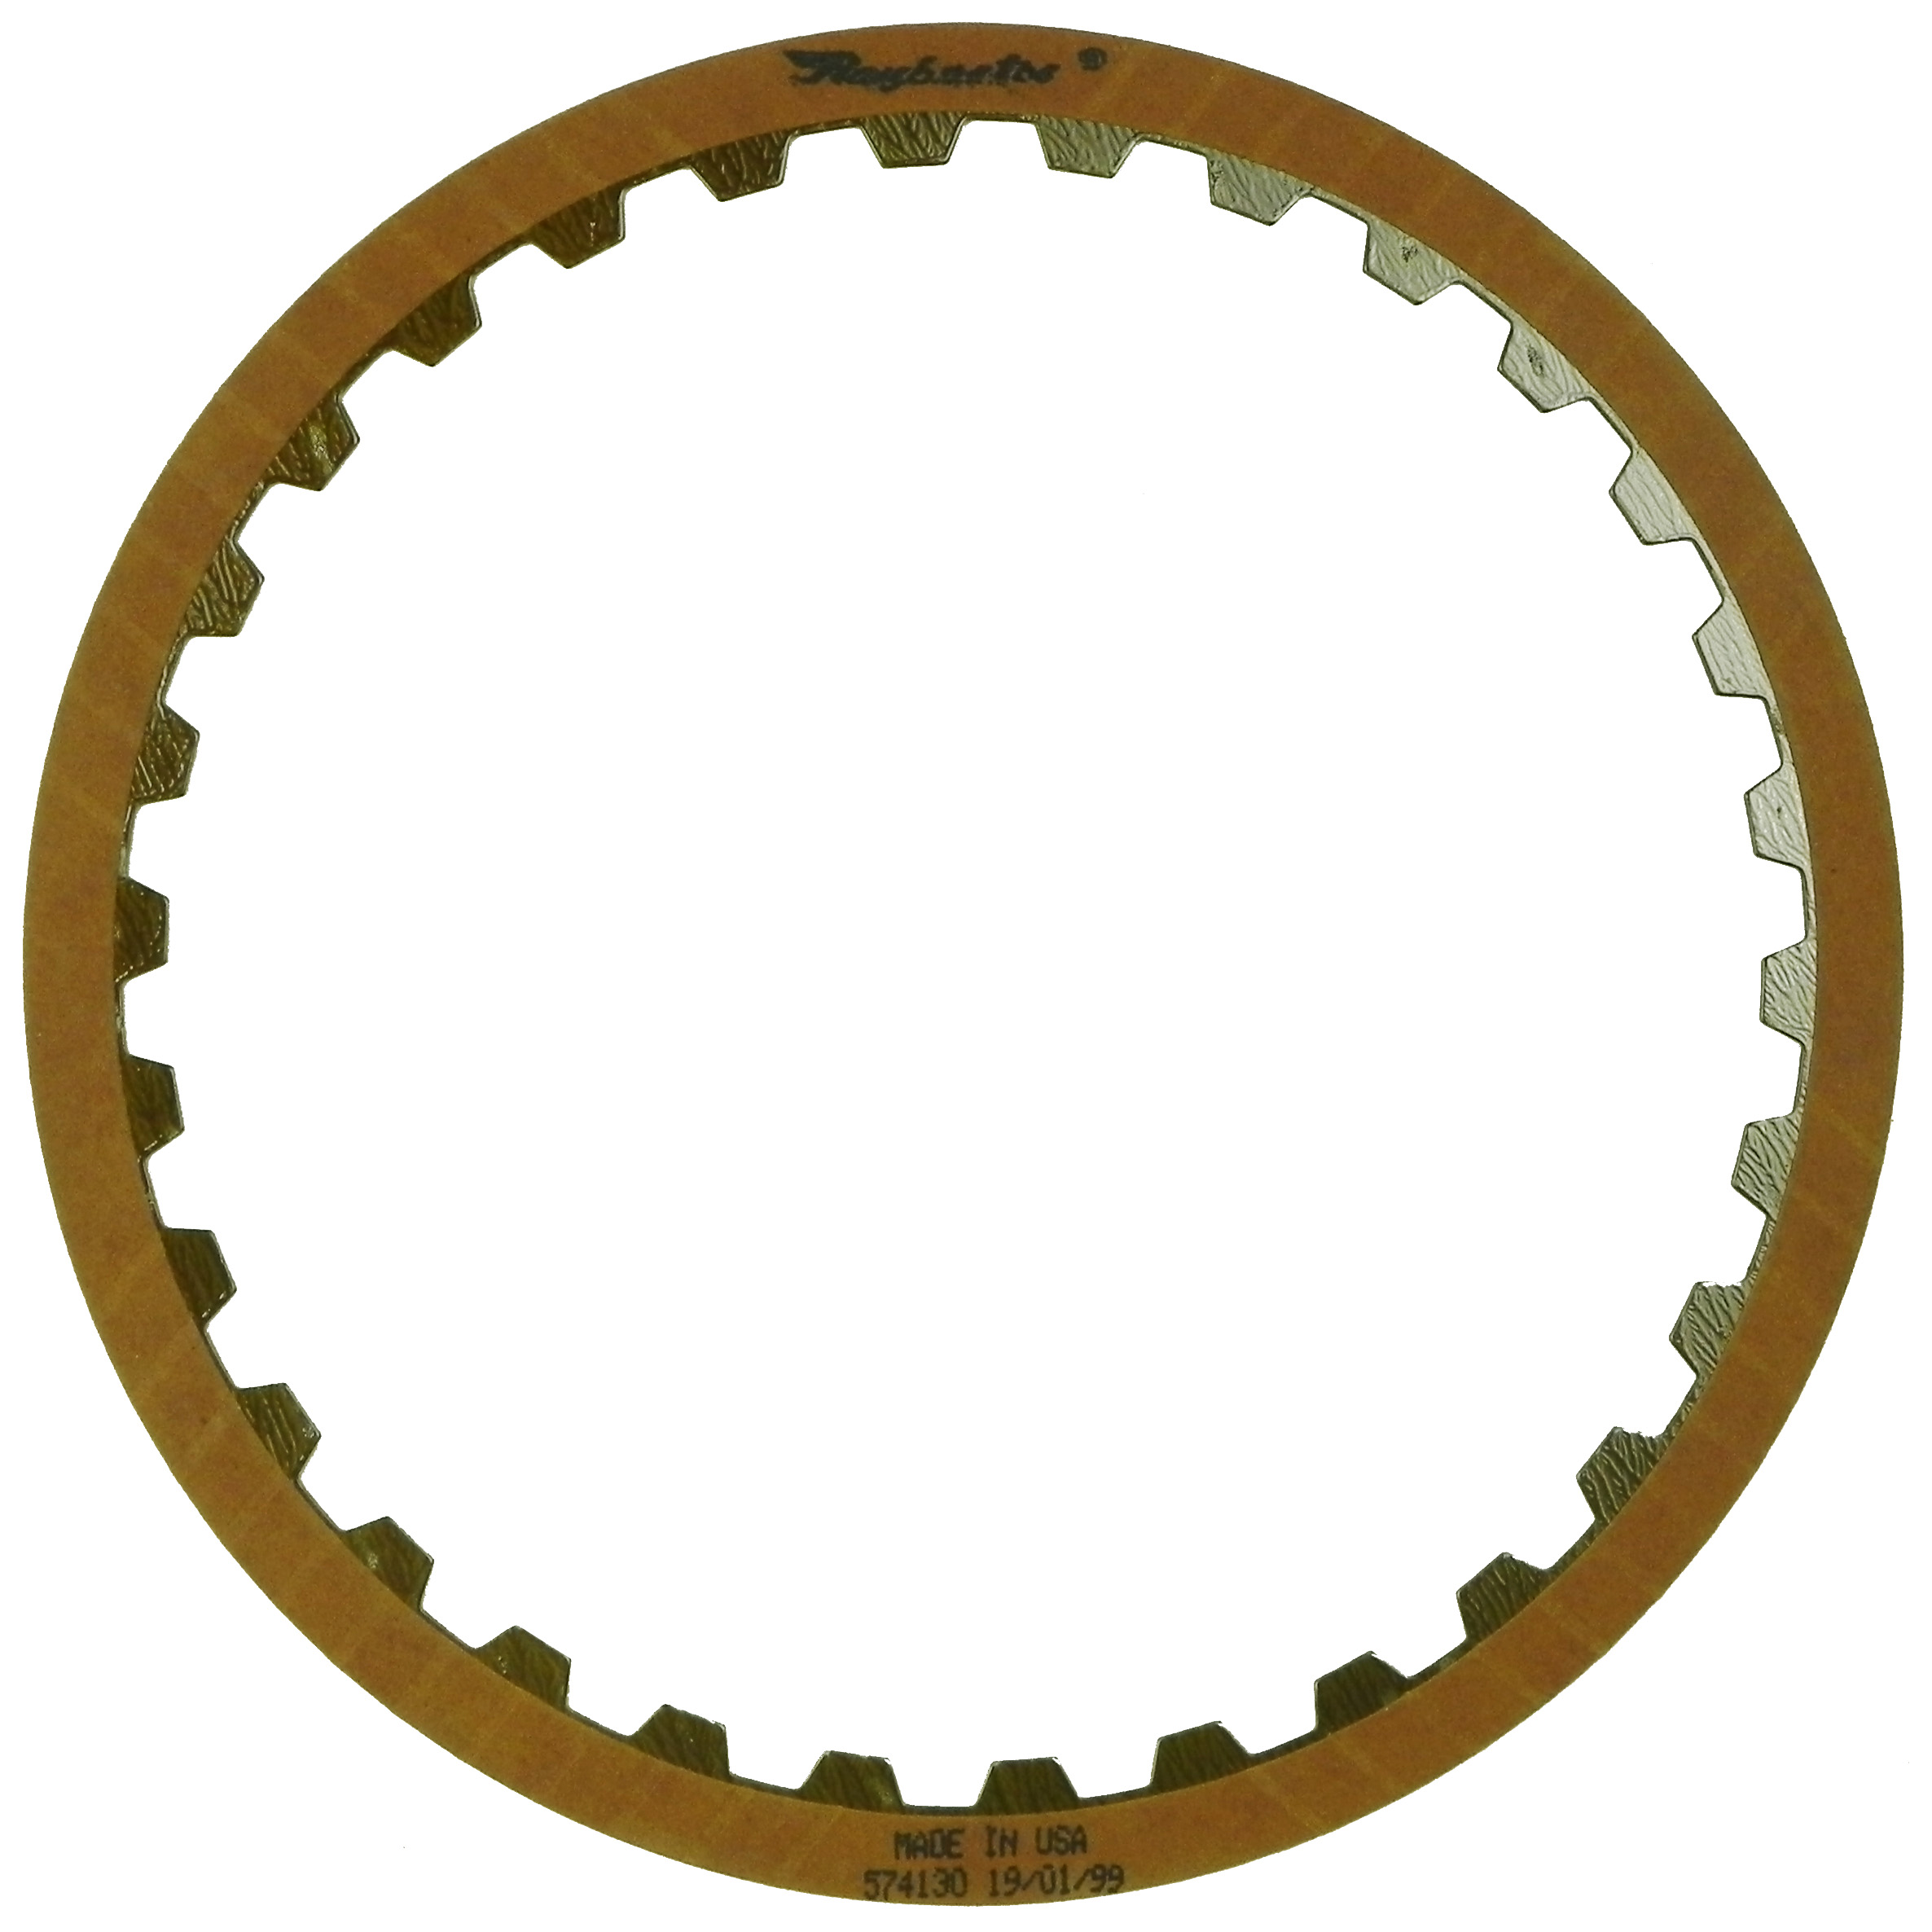 R574130 | 1995-2004 Friction Clutch Plate OE Replacement F (Overdrive/5th), G (Overrun/5th) Clutch